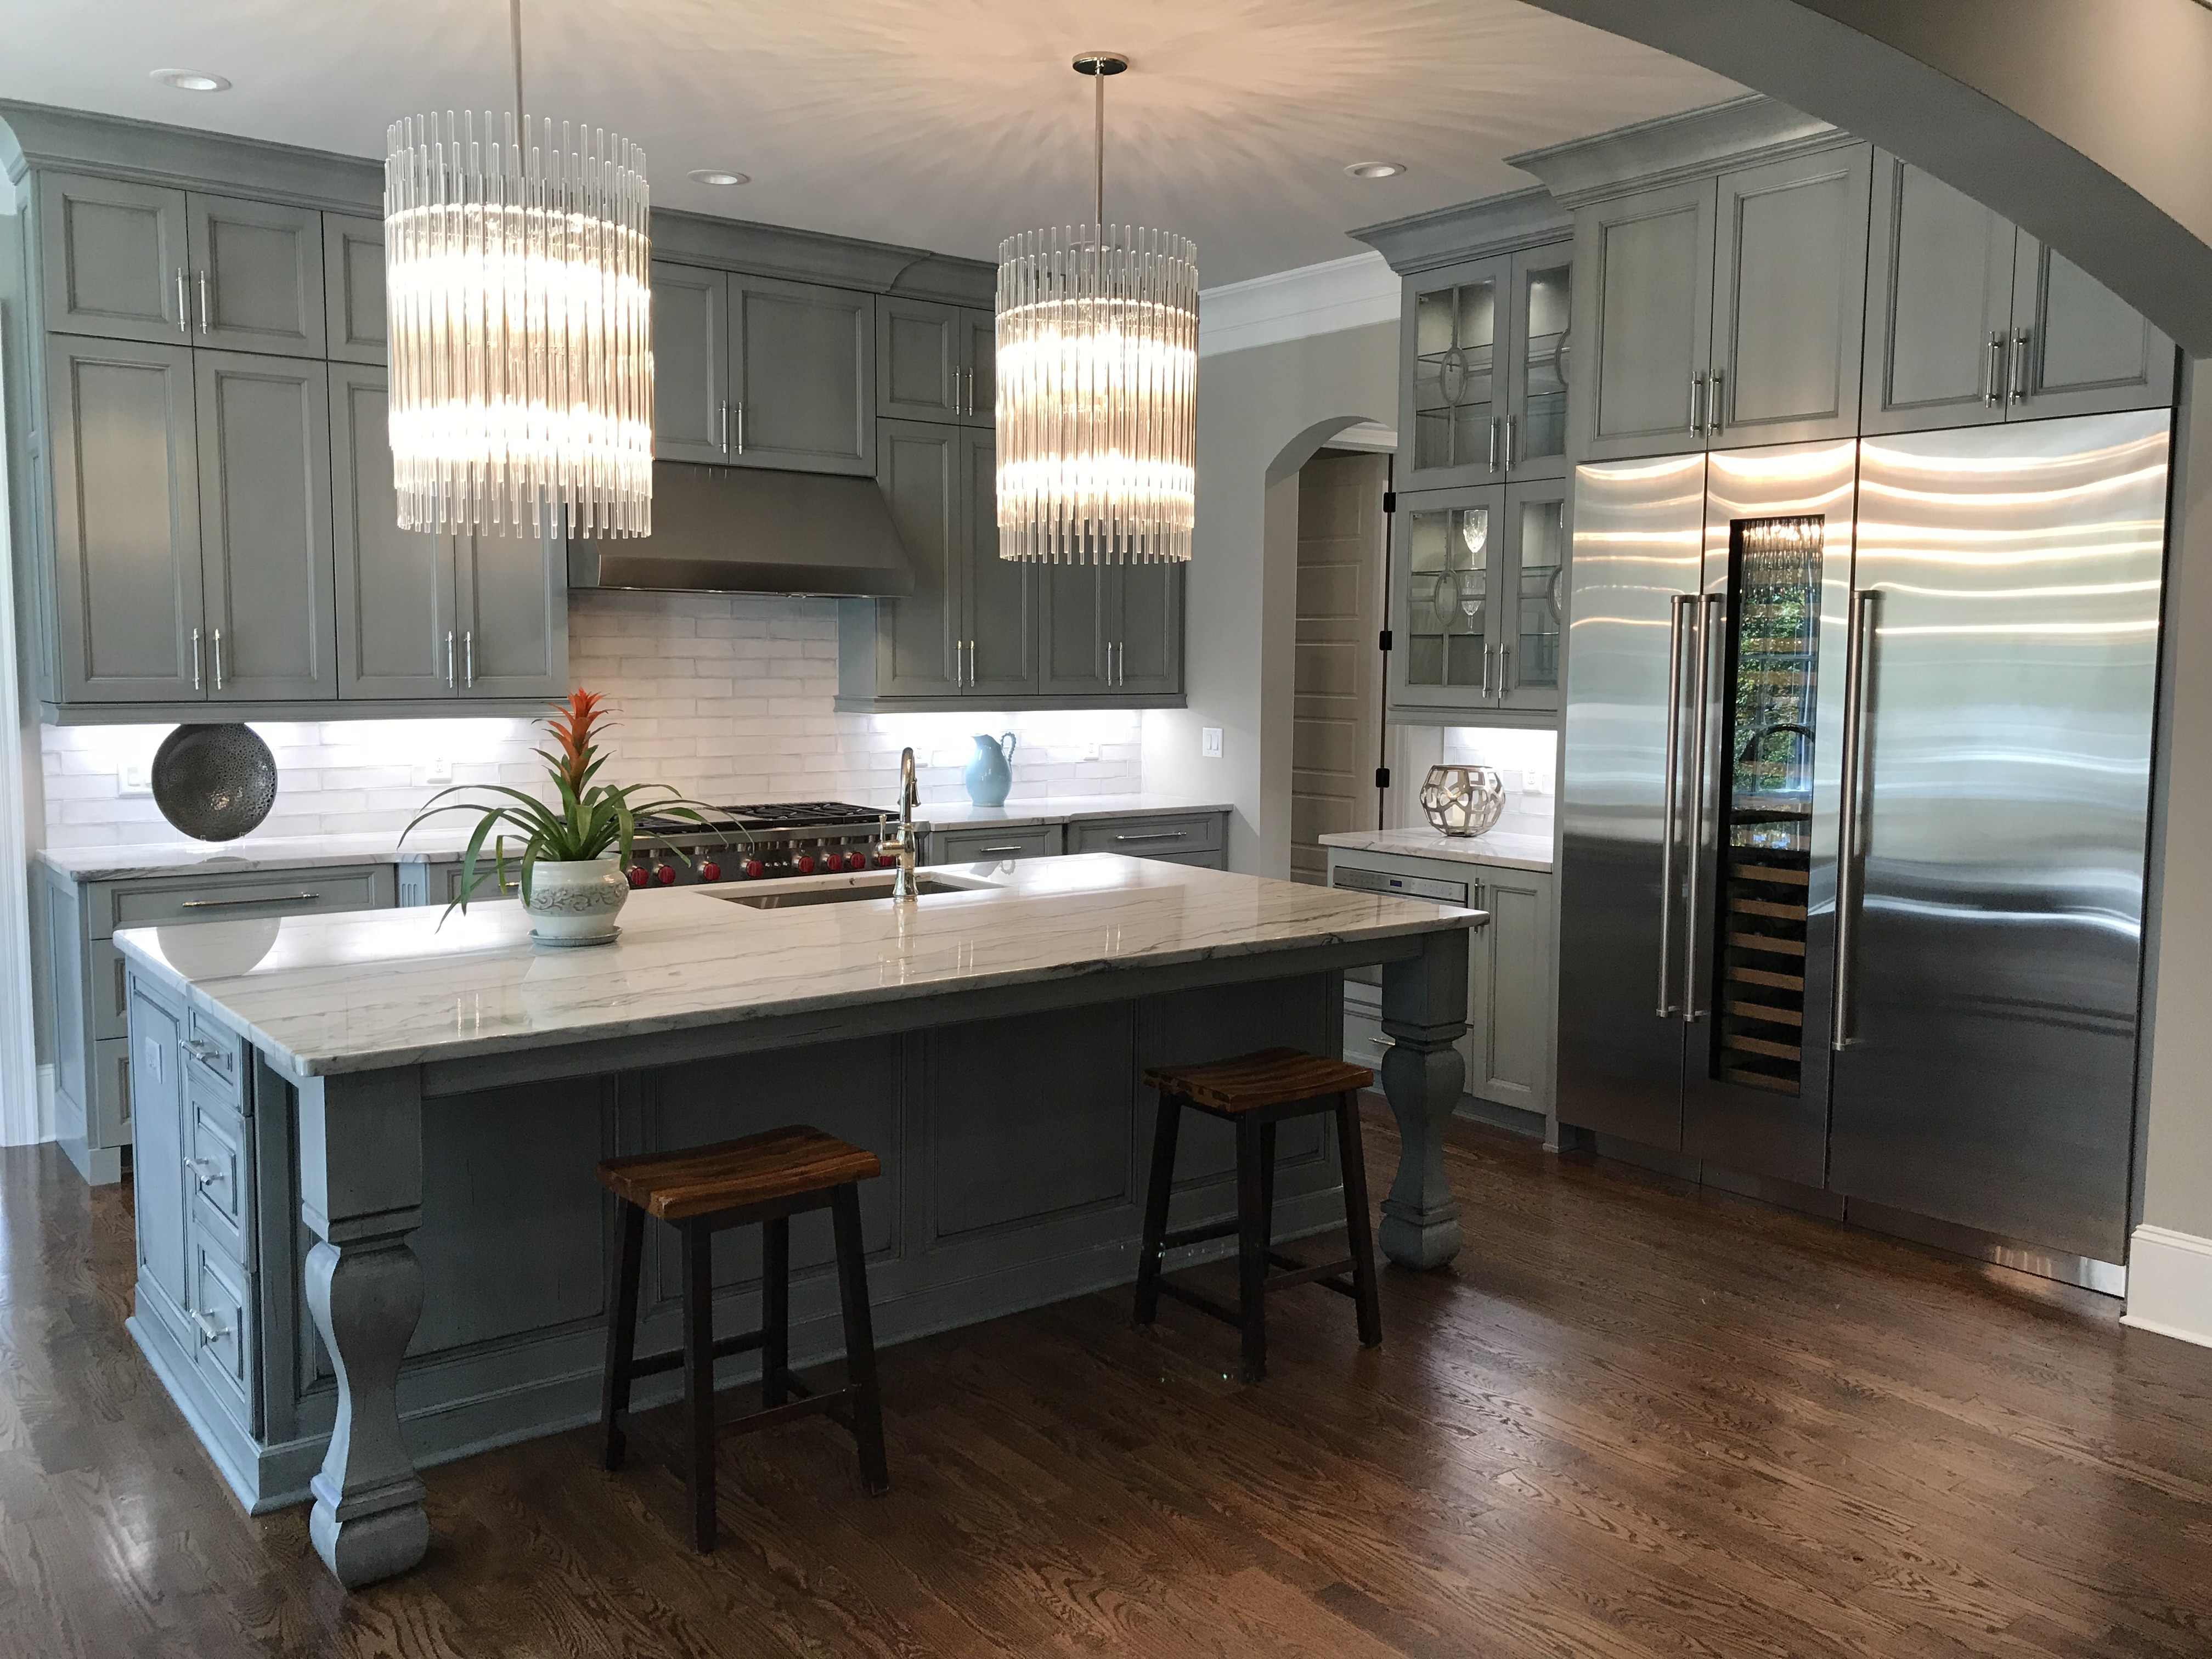 <div class='meta'><div class='origin-logo' data-origin='none'></div><span class='caption-text' data-credit='WTVD photo/Shawn Replogle'>Kitchen - 6506 New Market Way, Raleigh, NC - $1.25 million by Raleigh Custom Homes</span></div>